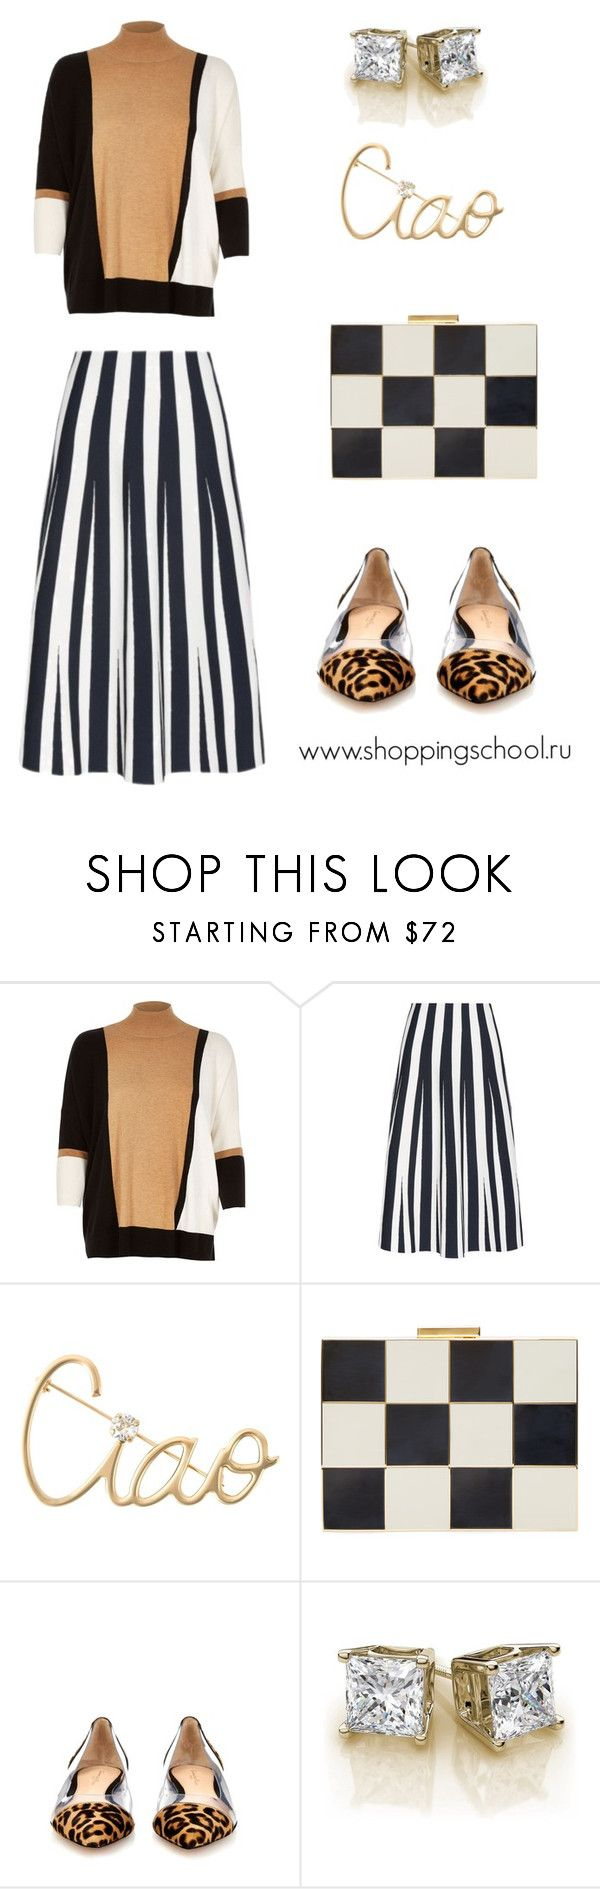 """Базовые вещи"" by shkolashopinga ❤ liked on Polyvore featuring River Island, Alexander Wang, Lanvin, Valentino and Gianvito Rossi"